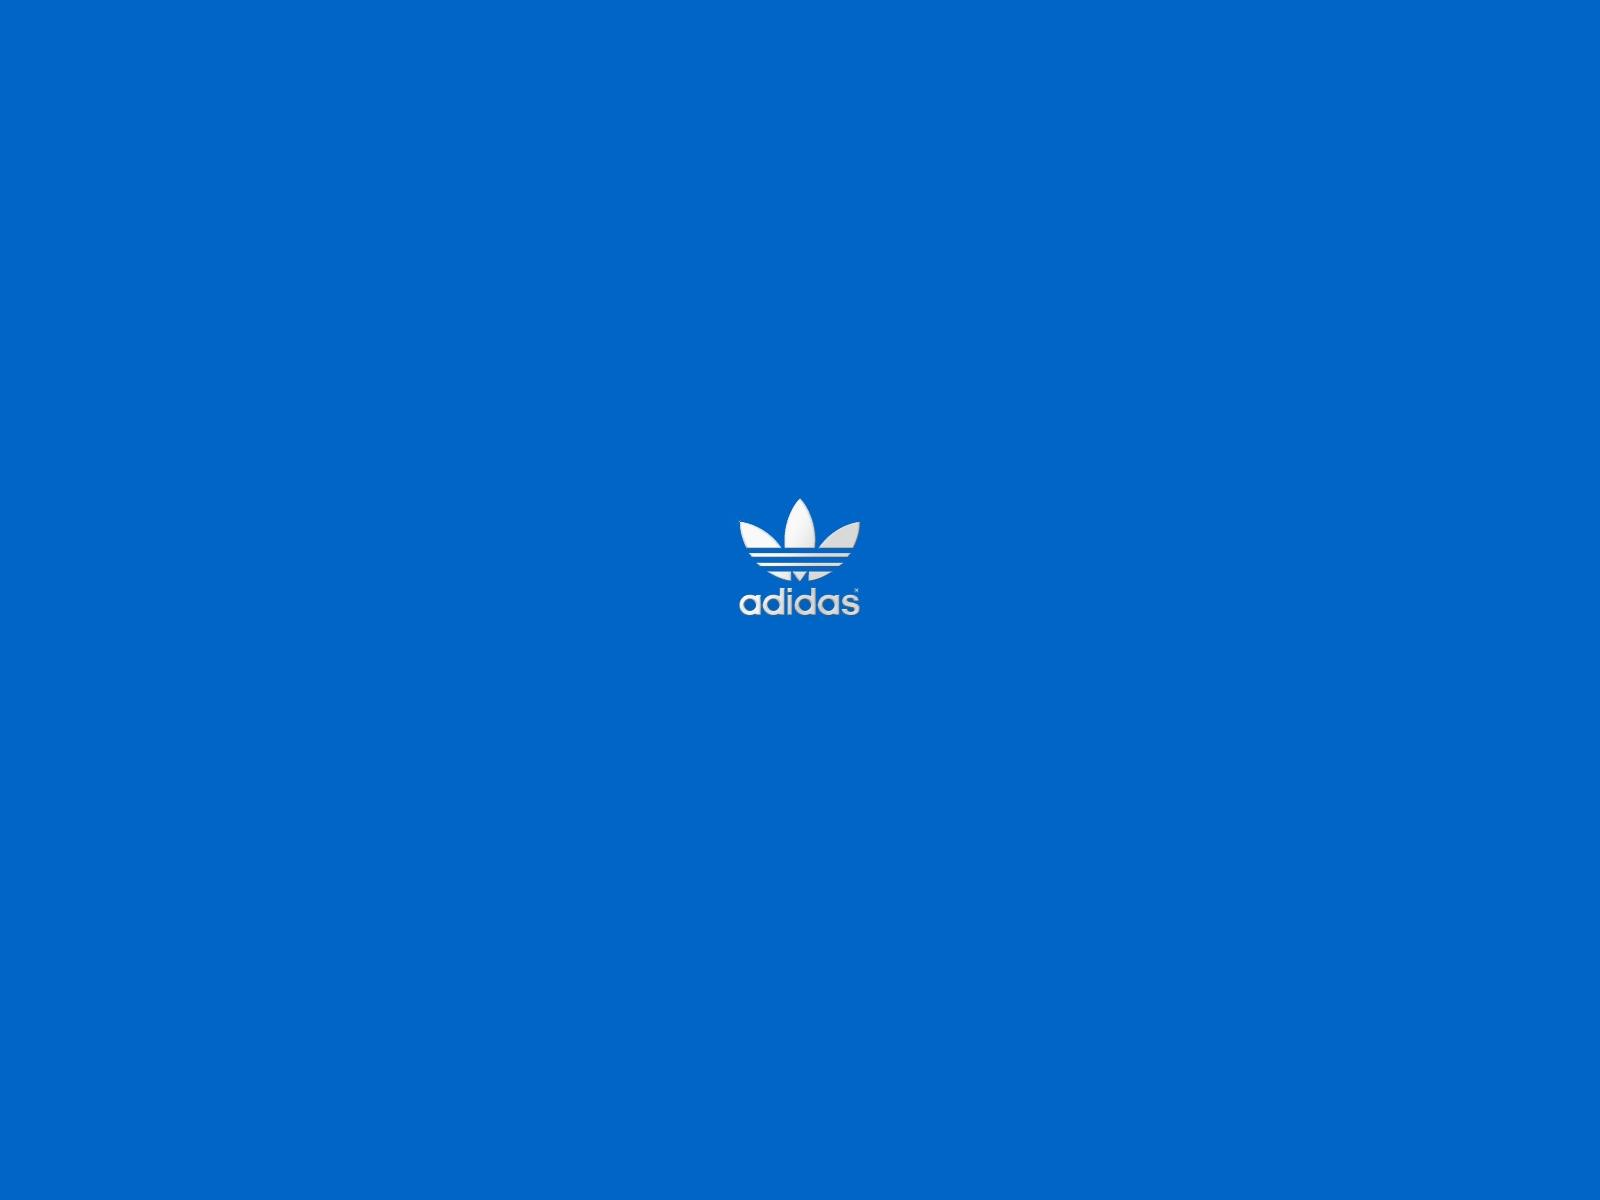 adidas wallpaper HD Free Download (2). by Peace · Download